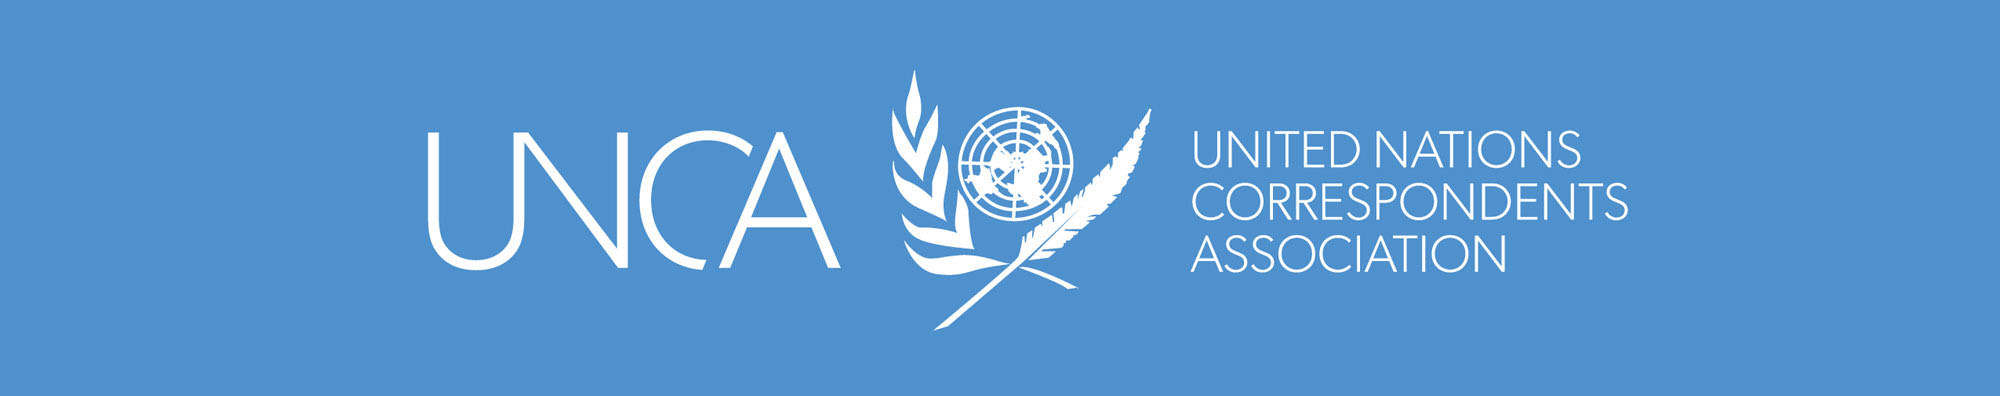 UN organizes journalism competition